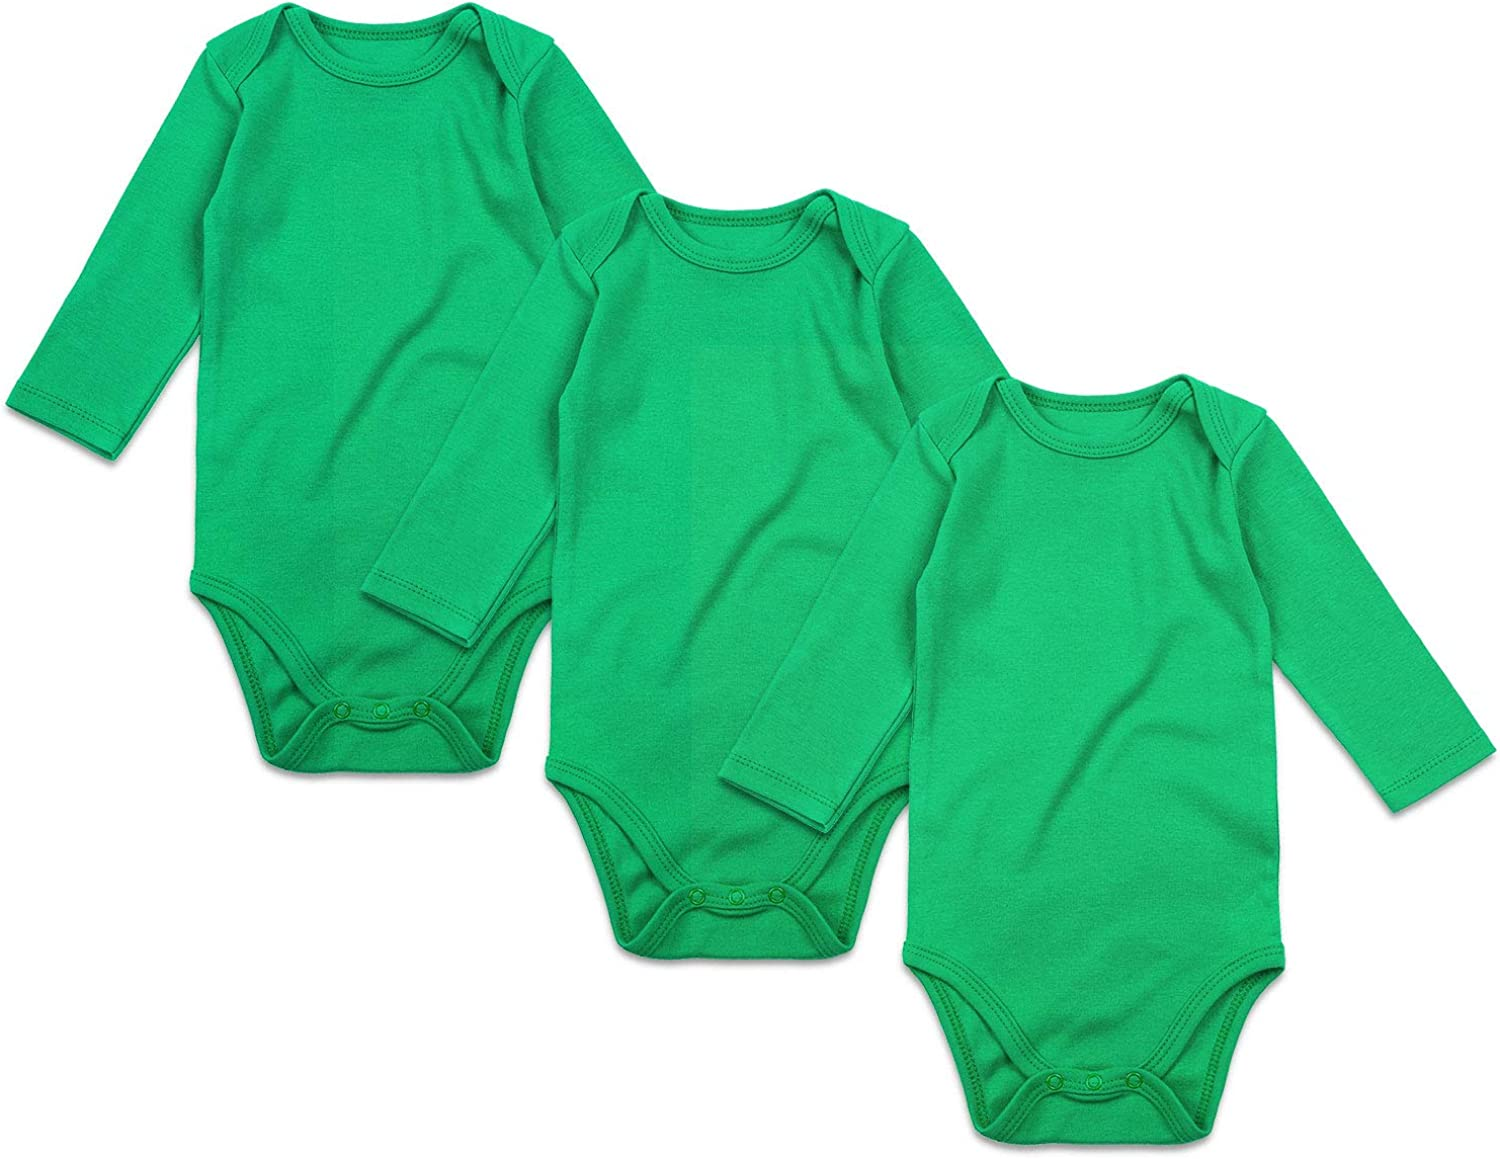 ROMPERINBOX Place Unisex Baby Bodysuits 100% Cotton Boys Girls 0-24 Months: Clothing